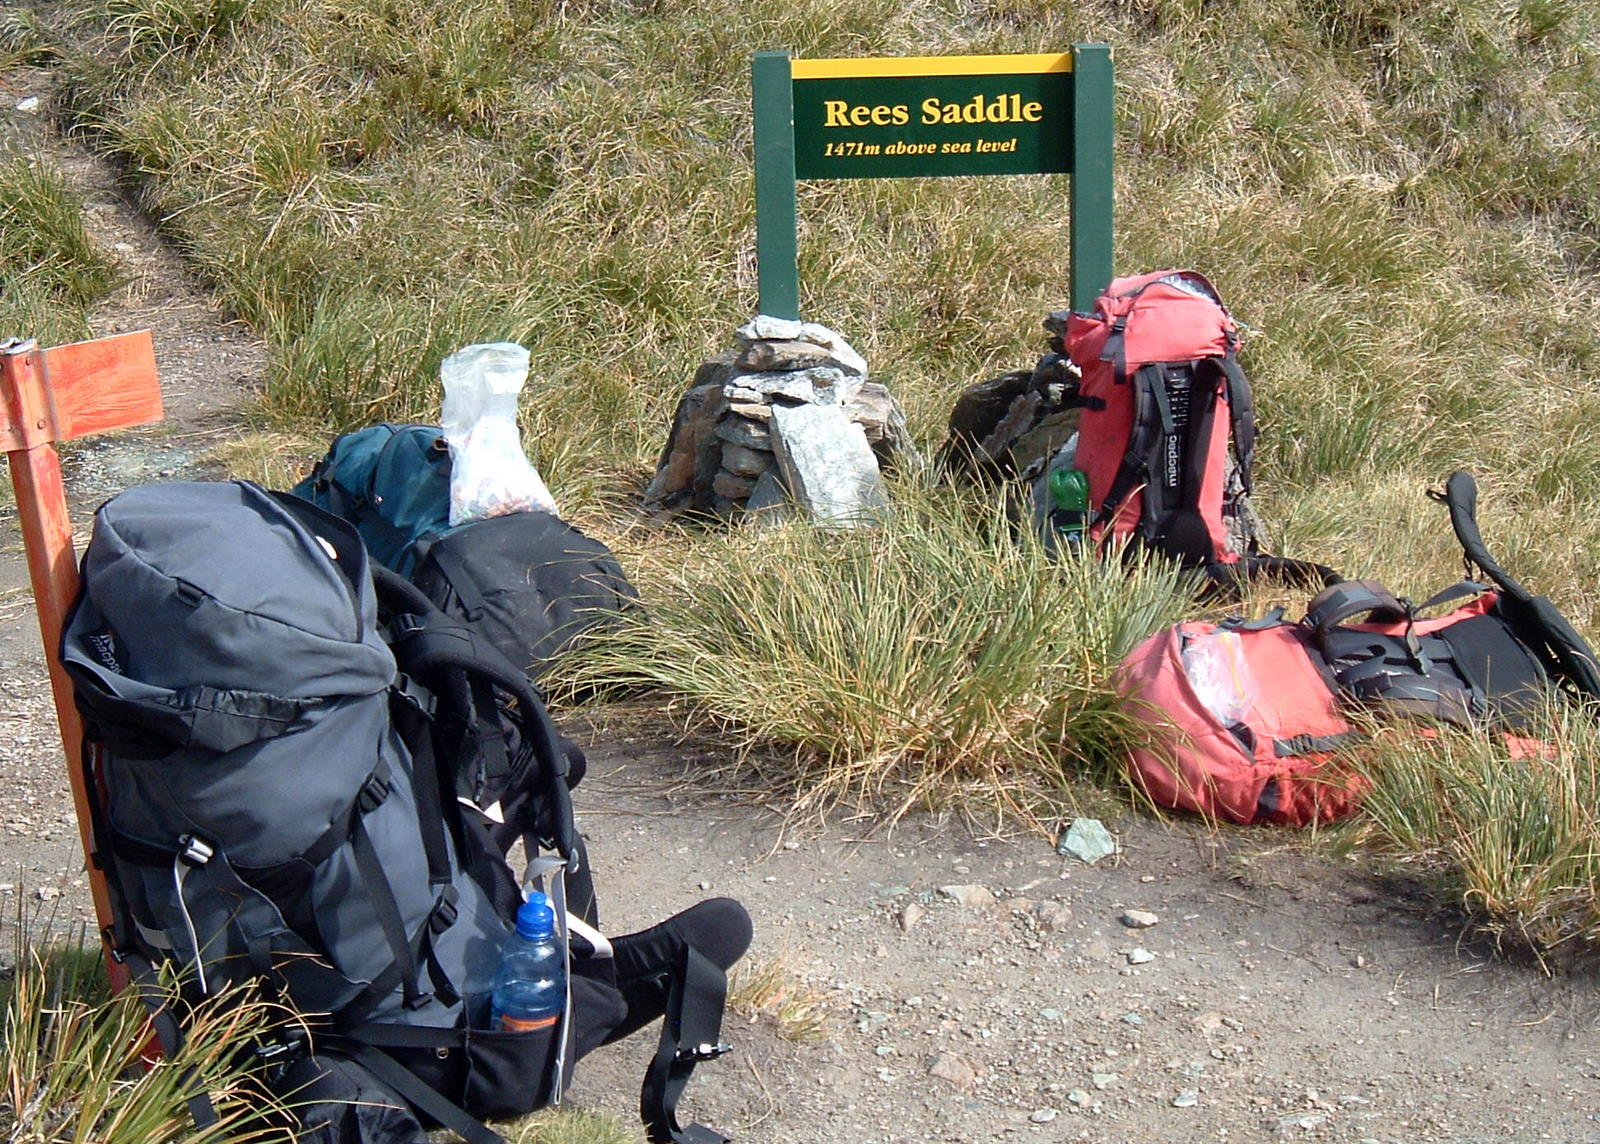 Packs ditched at the top of Rees Saddle